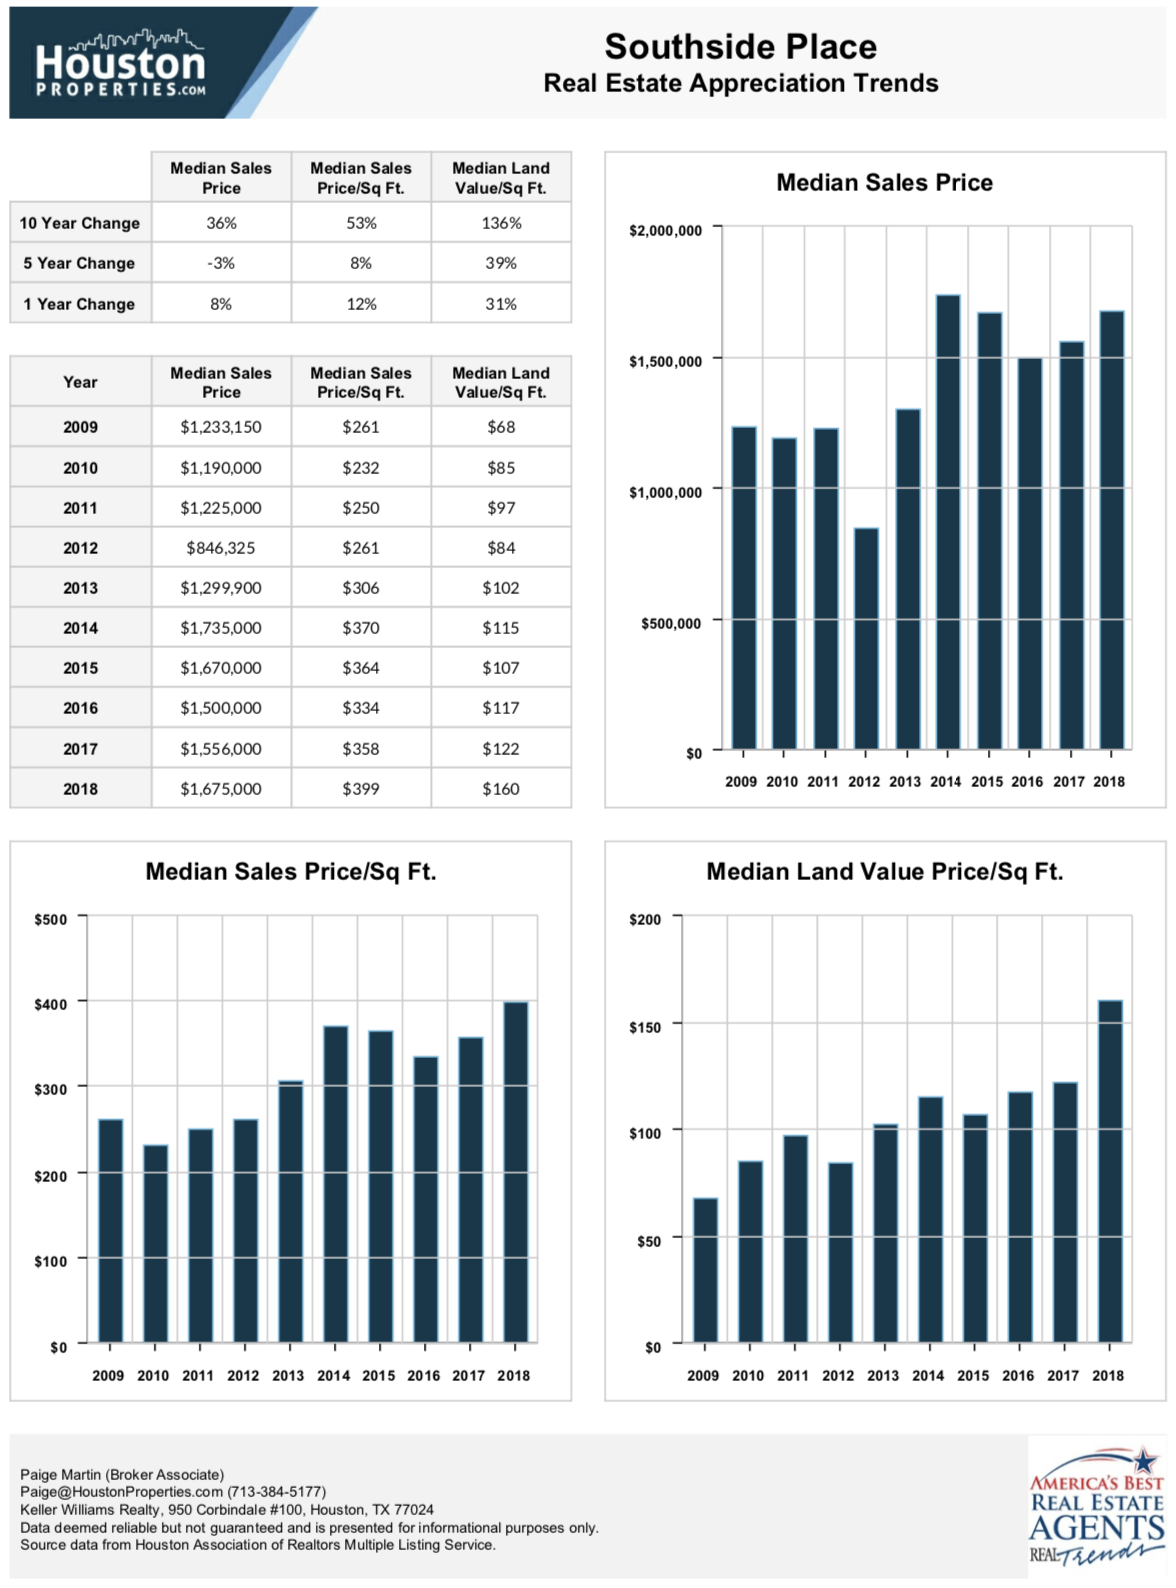 Southside Place Real Estate Stats